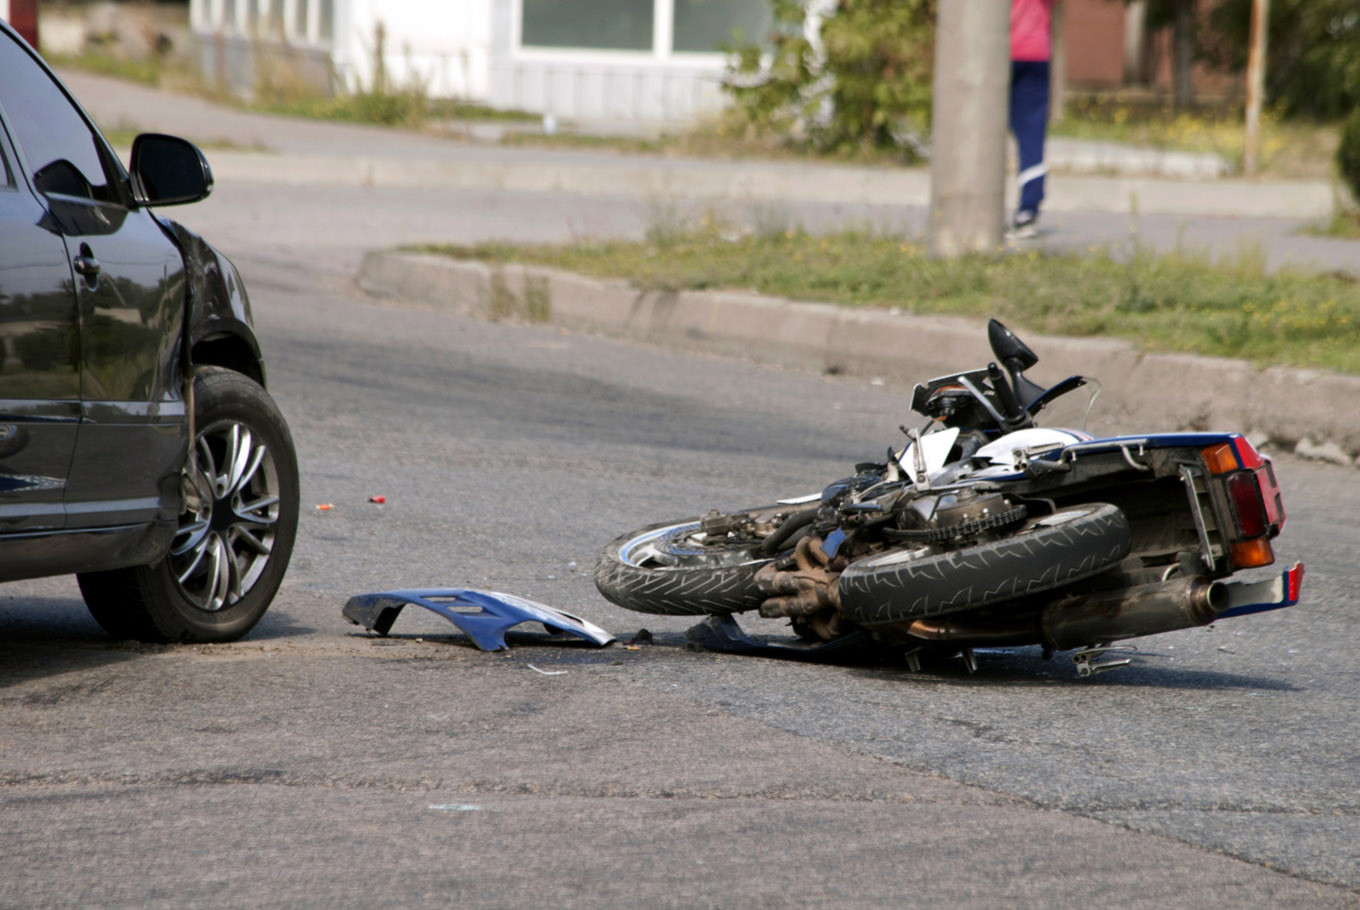 Video of hit-and-run incident in Surakarta goes viral